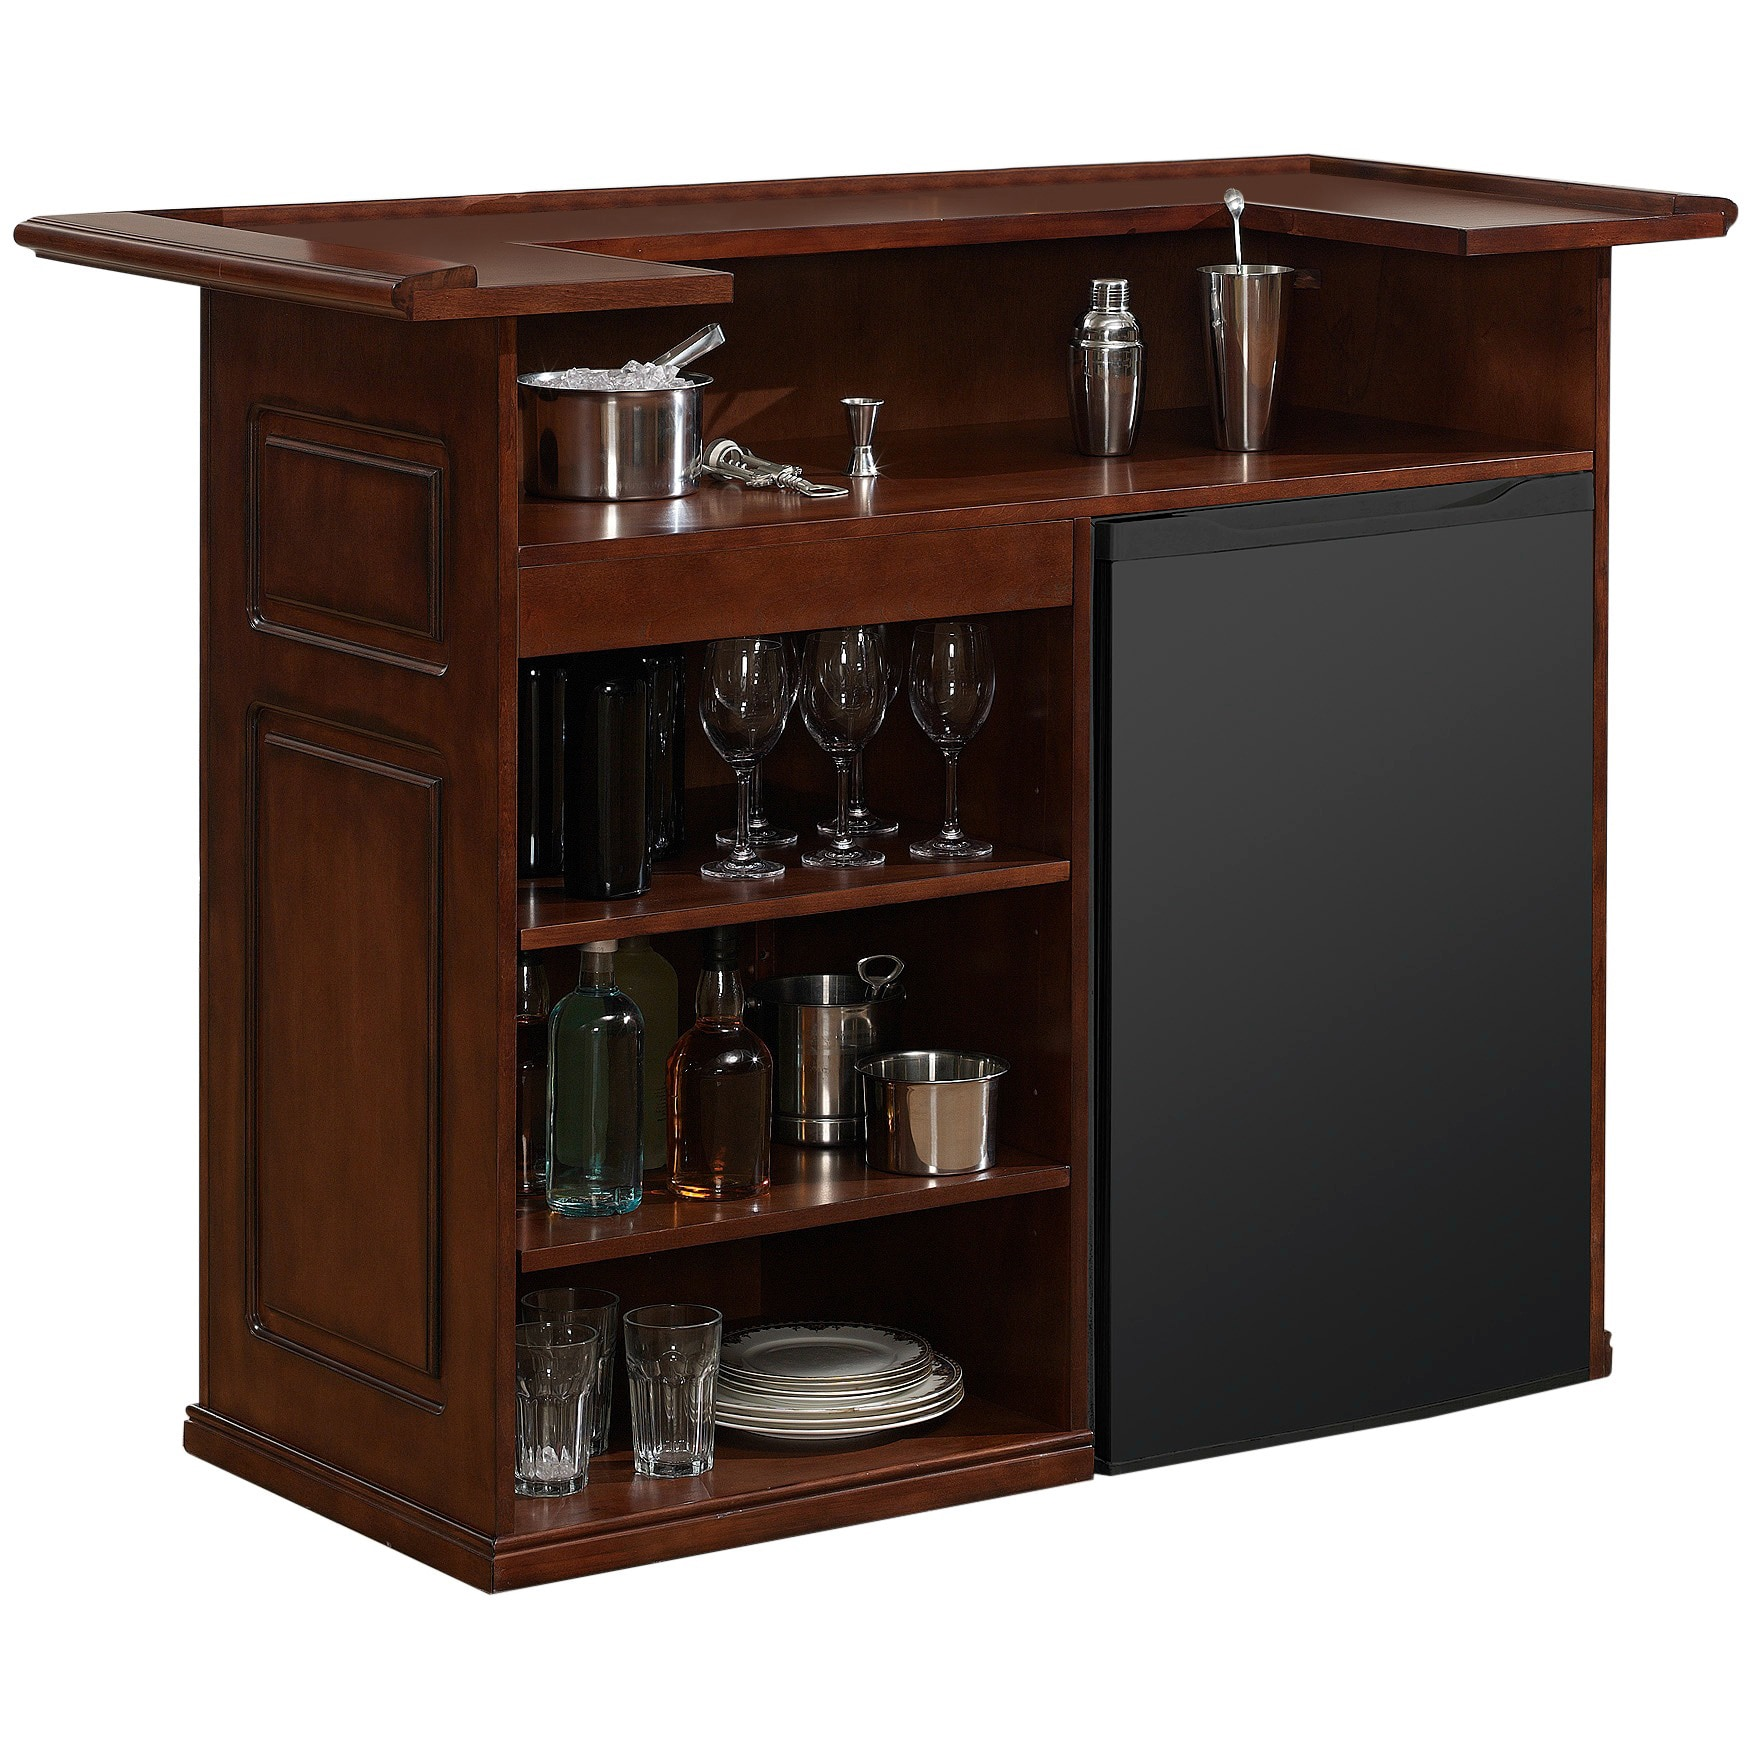 American Heritage Billiards Sanford 58-inch Brown Home Bar Space